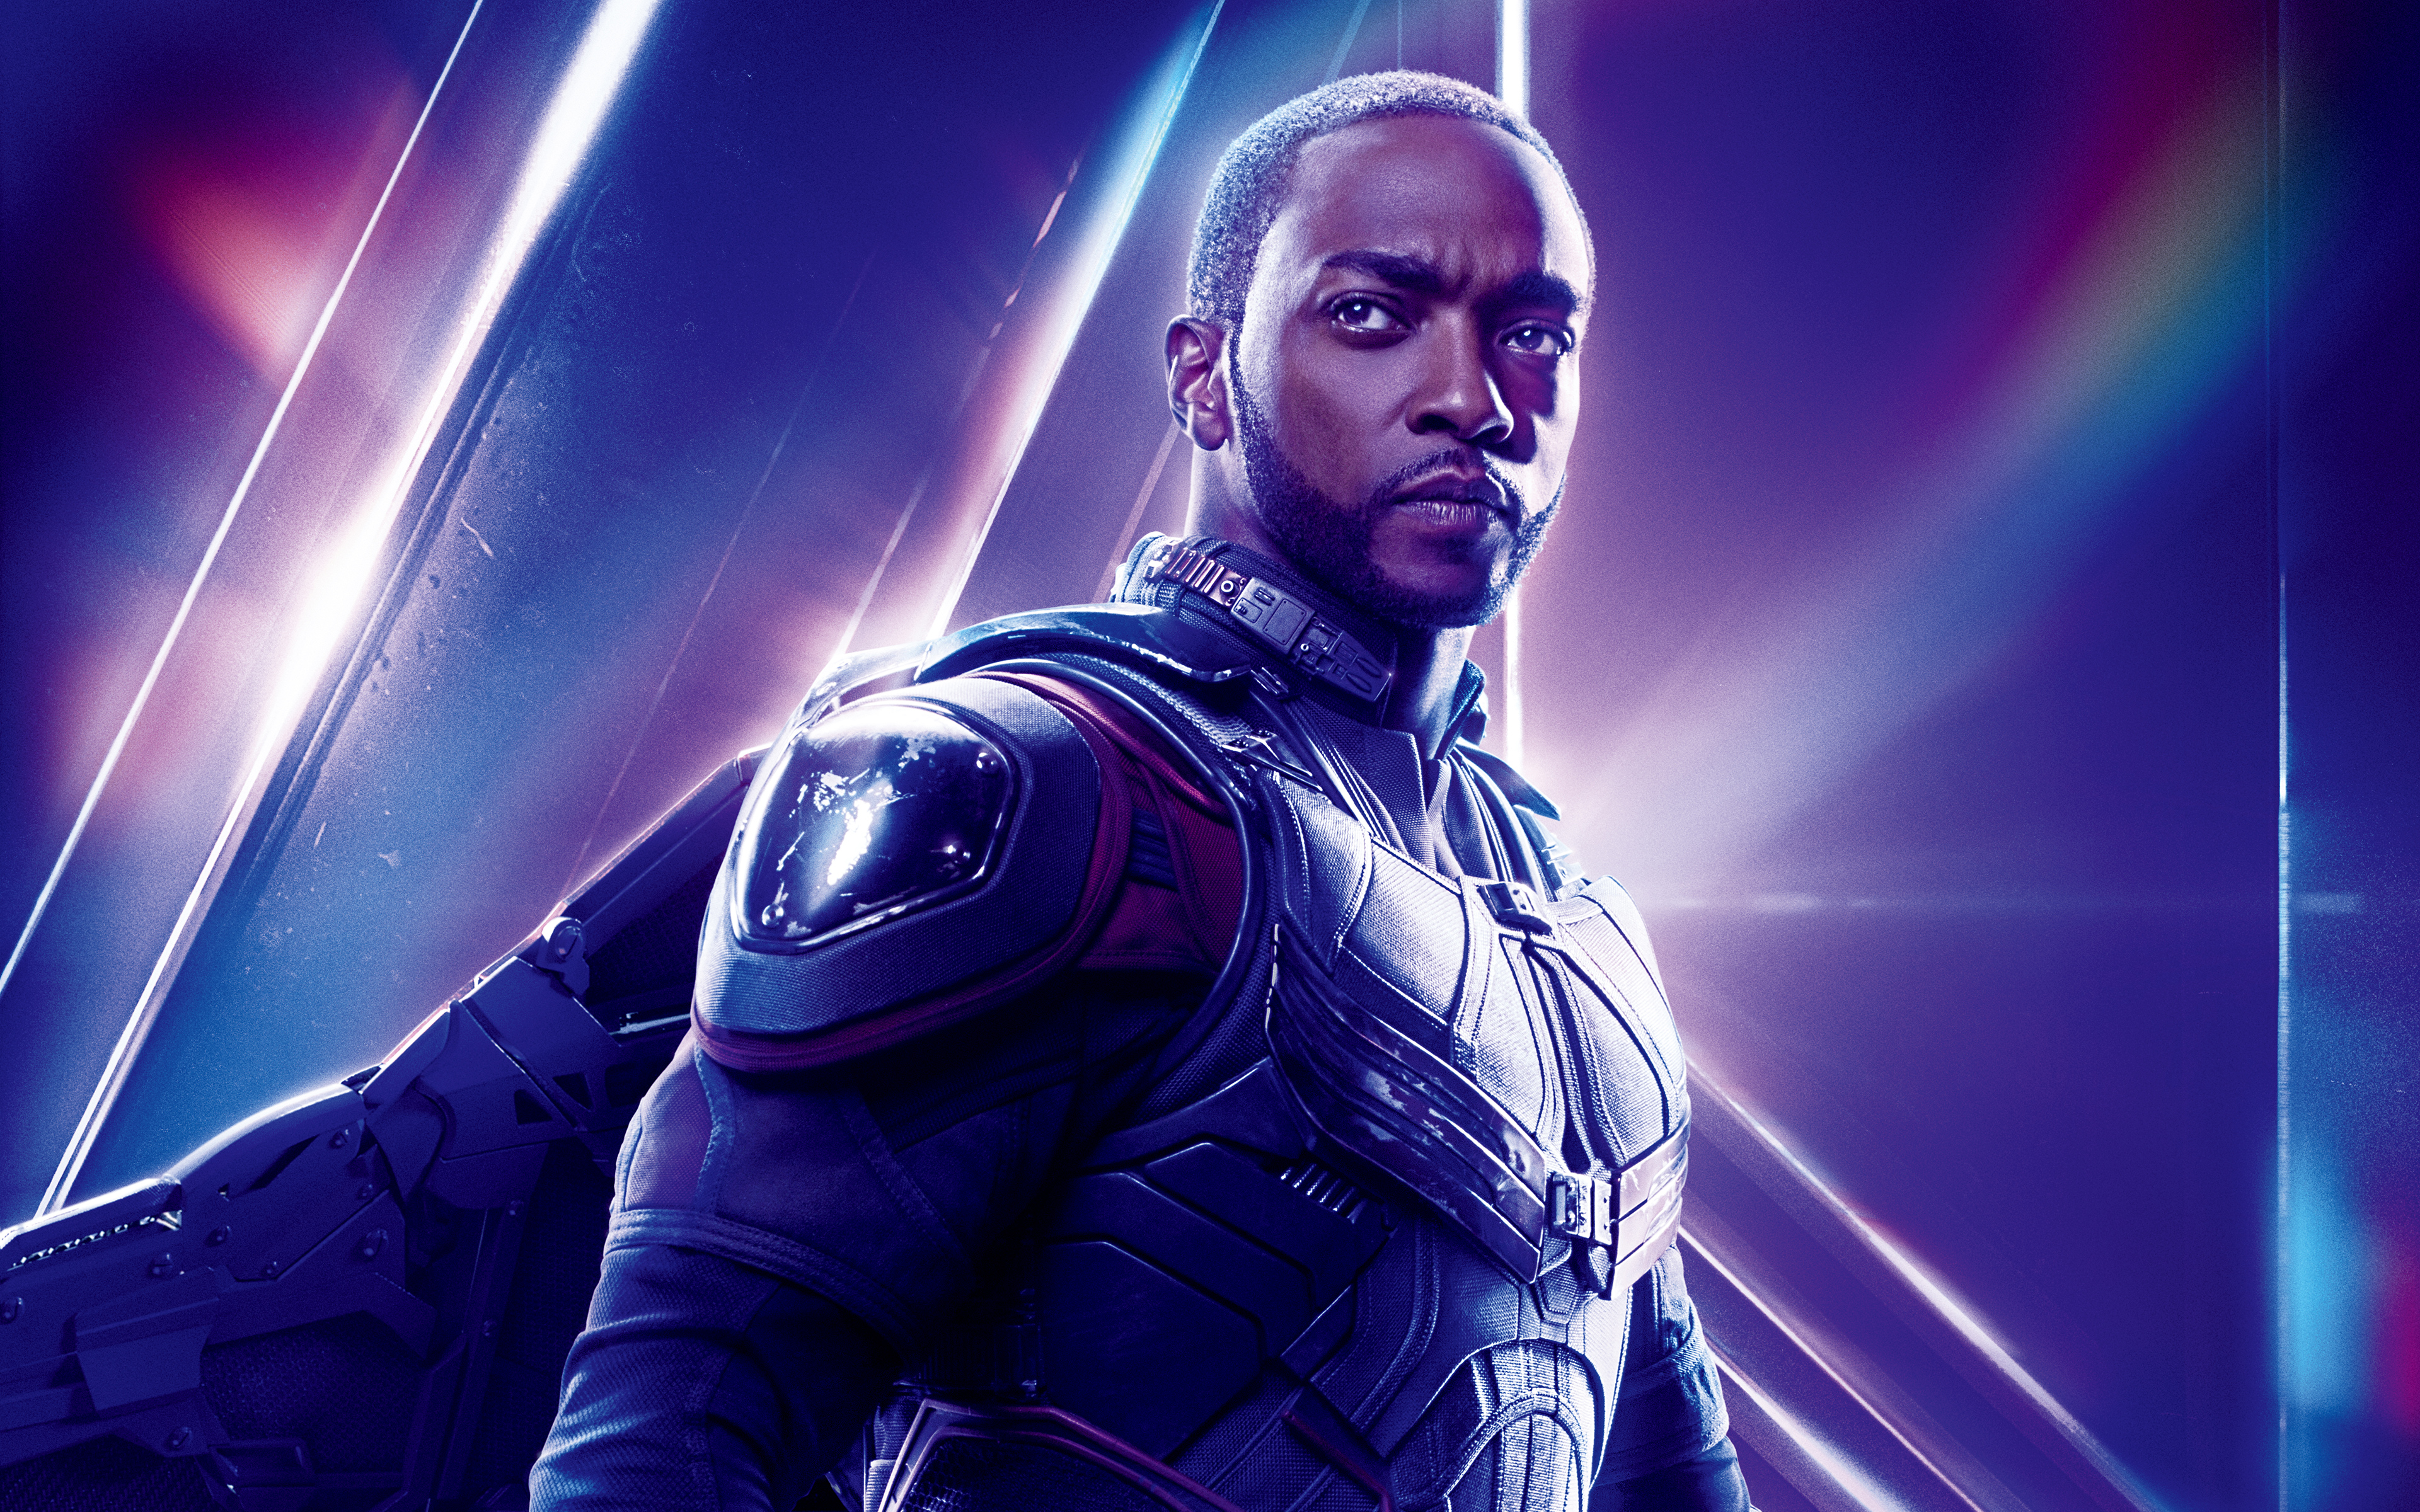 Anthony Mackie as Falcon in Avengers Infinity War 5K5552910223 - Anthony Mackie as Falcon in Avengers Infinity War 5K - War, Mackie, Infinity, Falcon, Avengers, Anthony, 2018